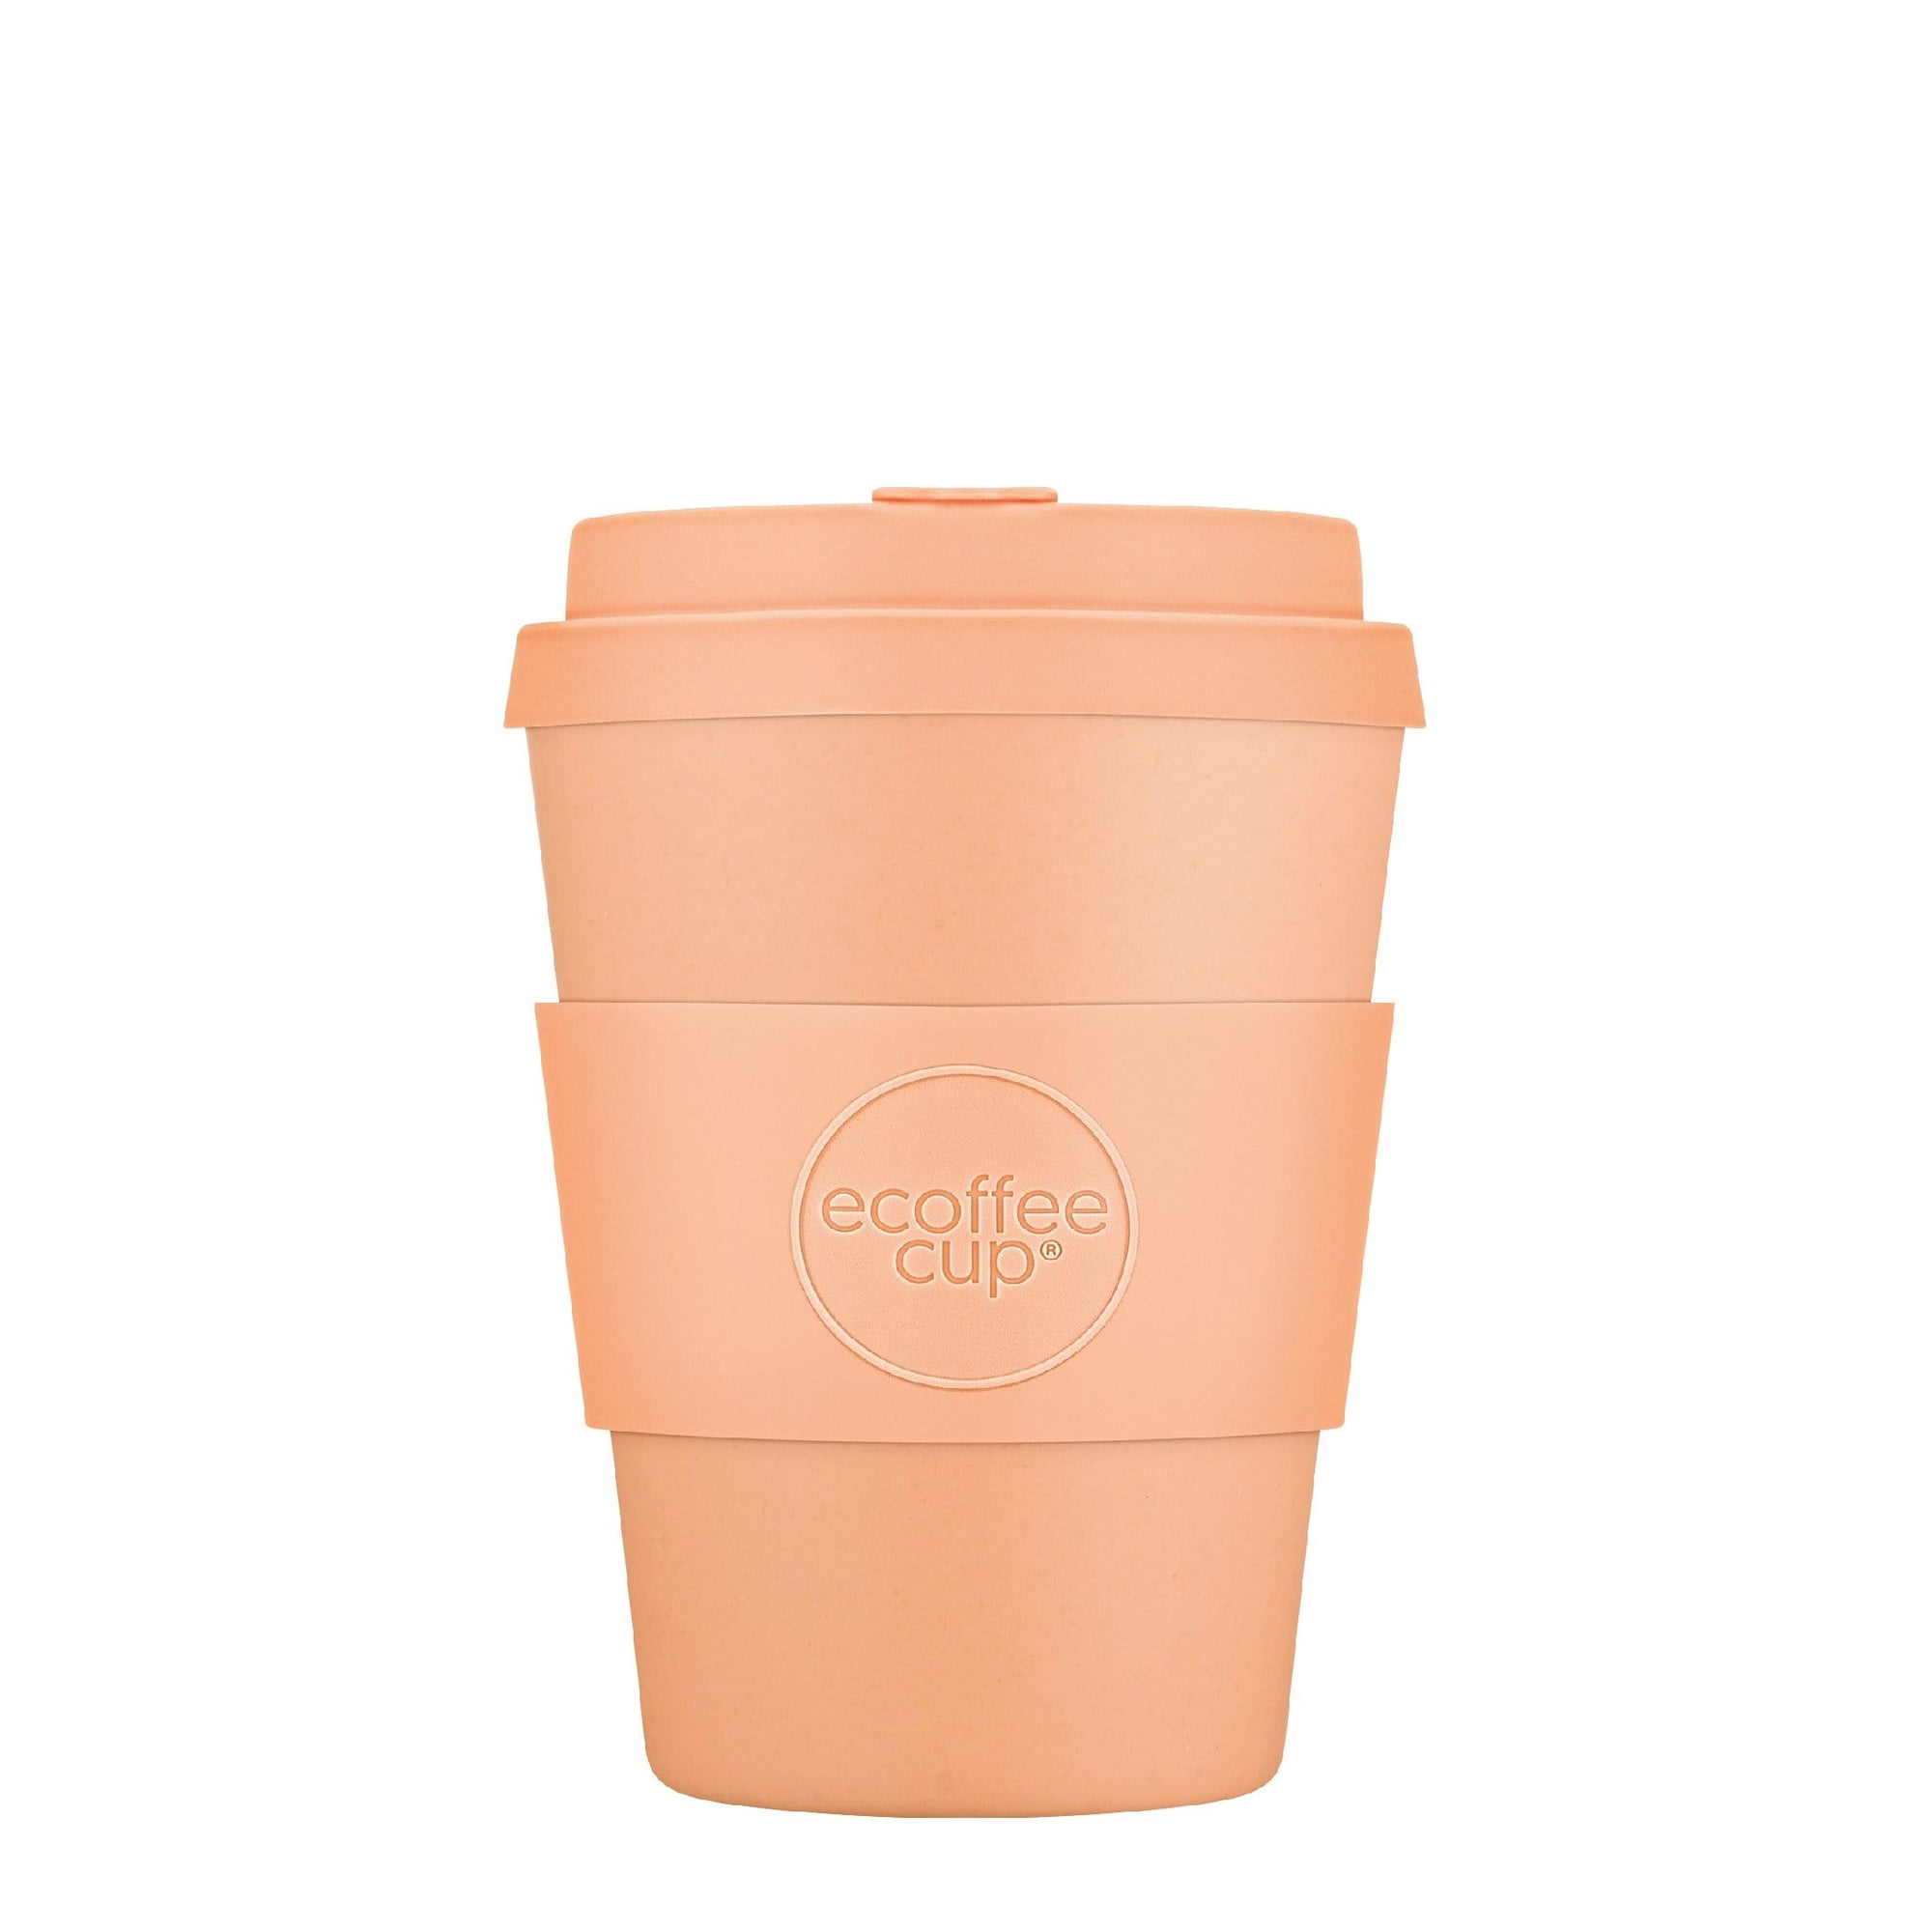 Ecoffee Cup - Catalina Happy Hour